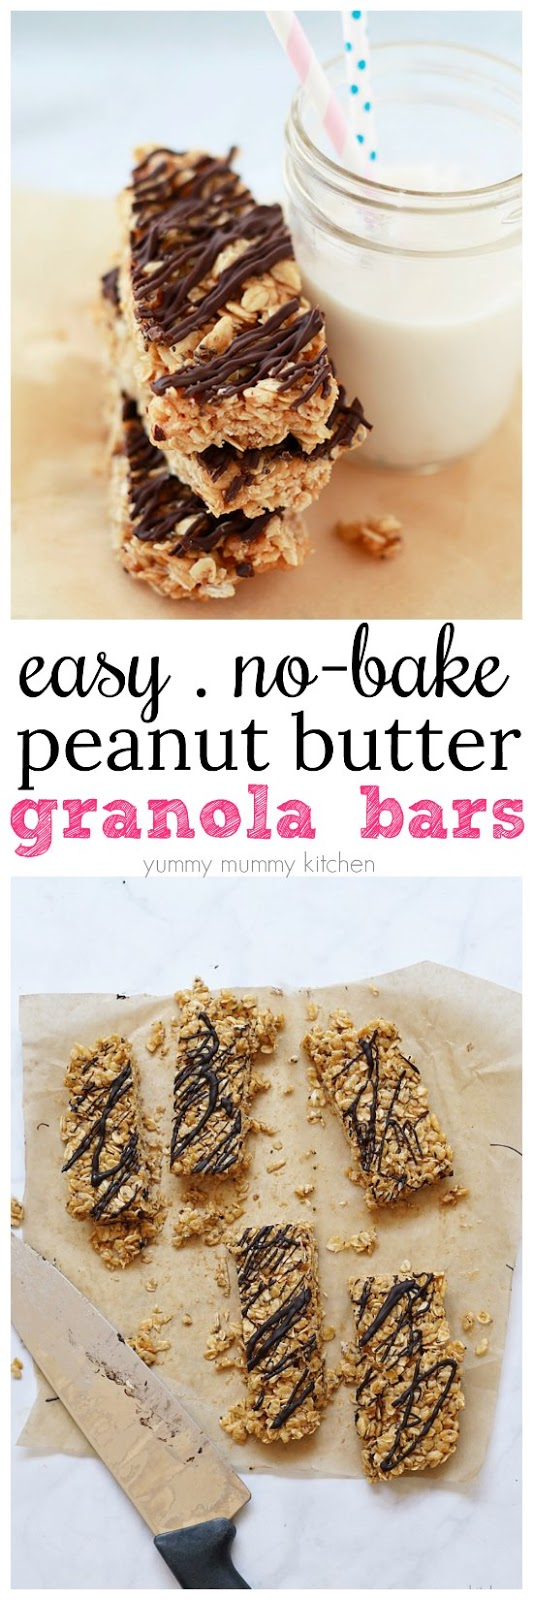 These easy no-bake peanut butter granola bars are vegan and gluten free. They make a great lunch box or after school snack.